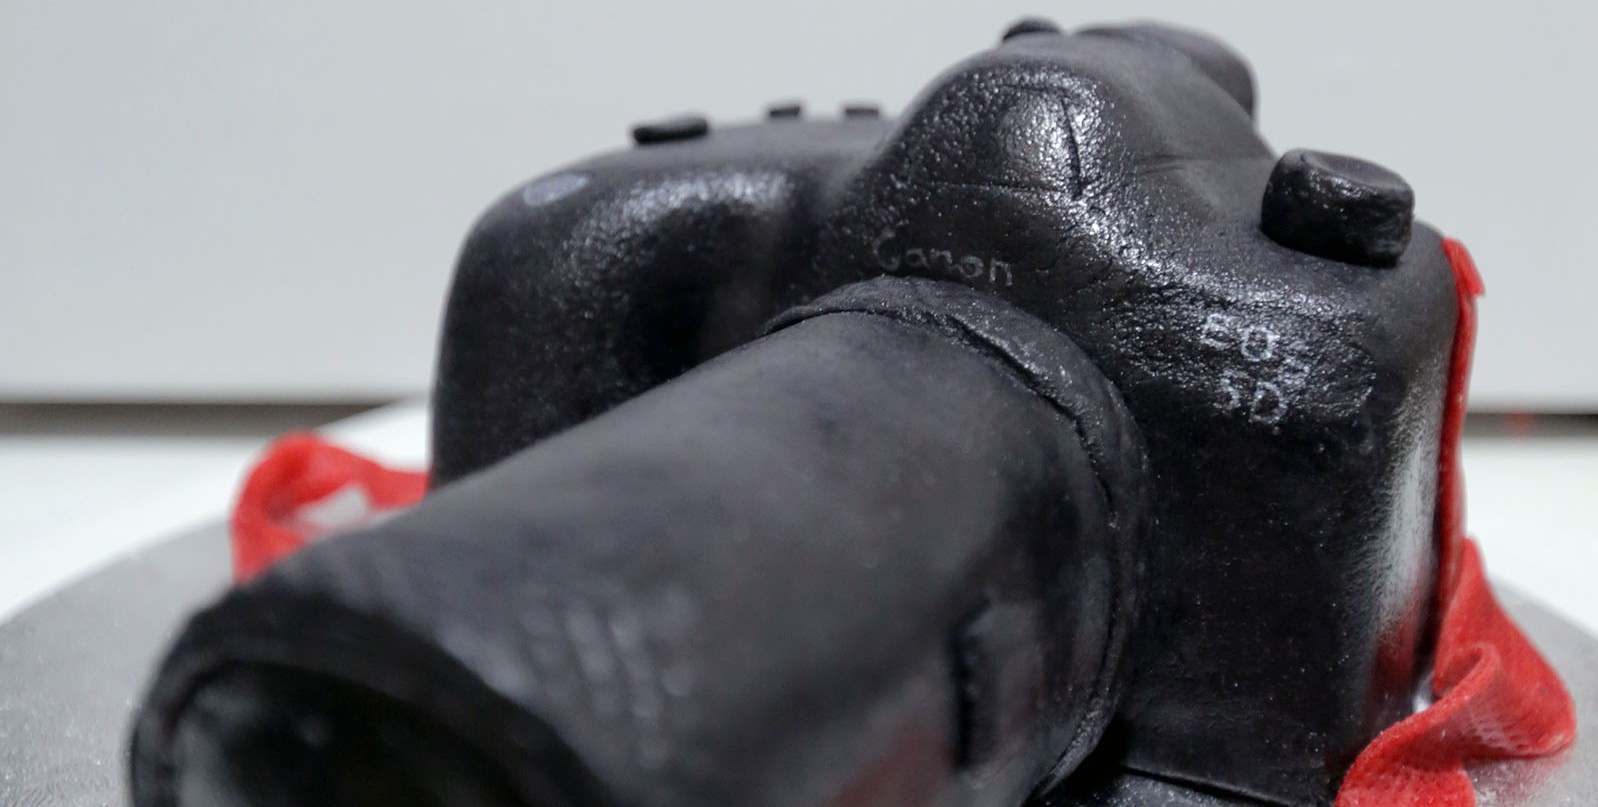 Turn your Canon 5D Mark III in to a professional video camera